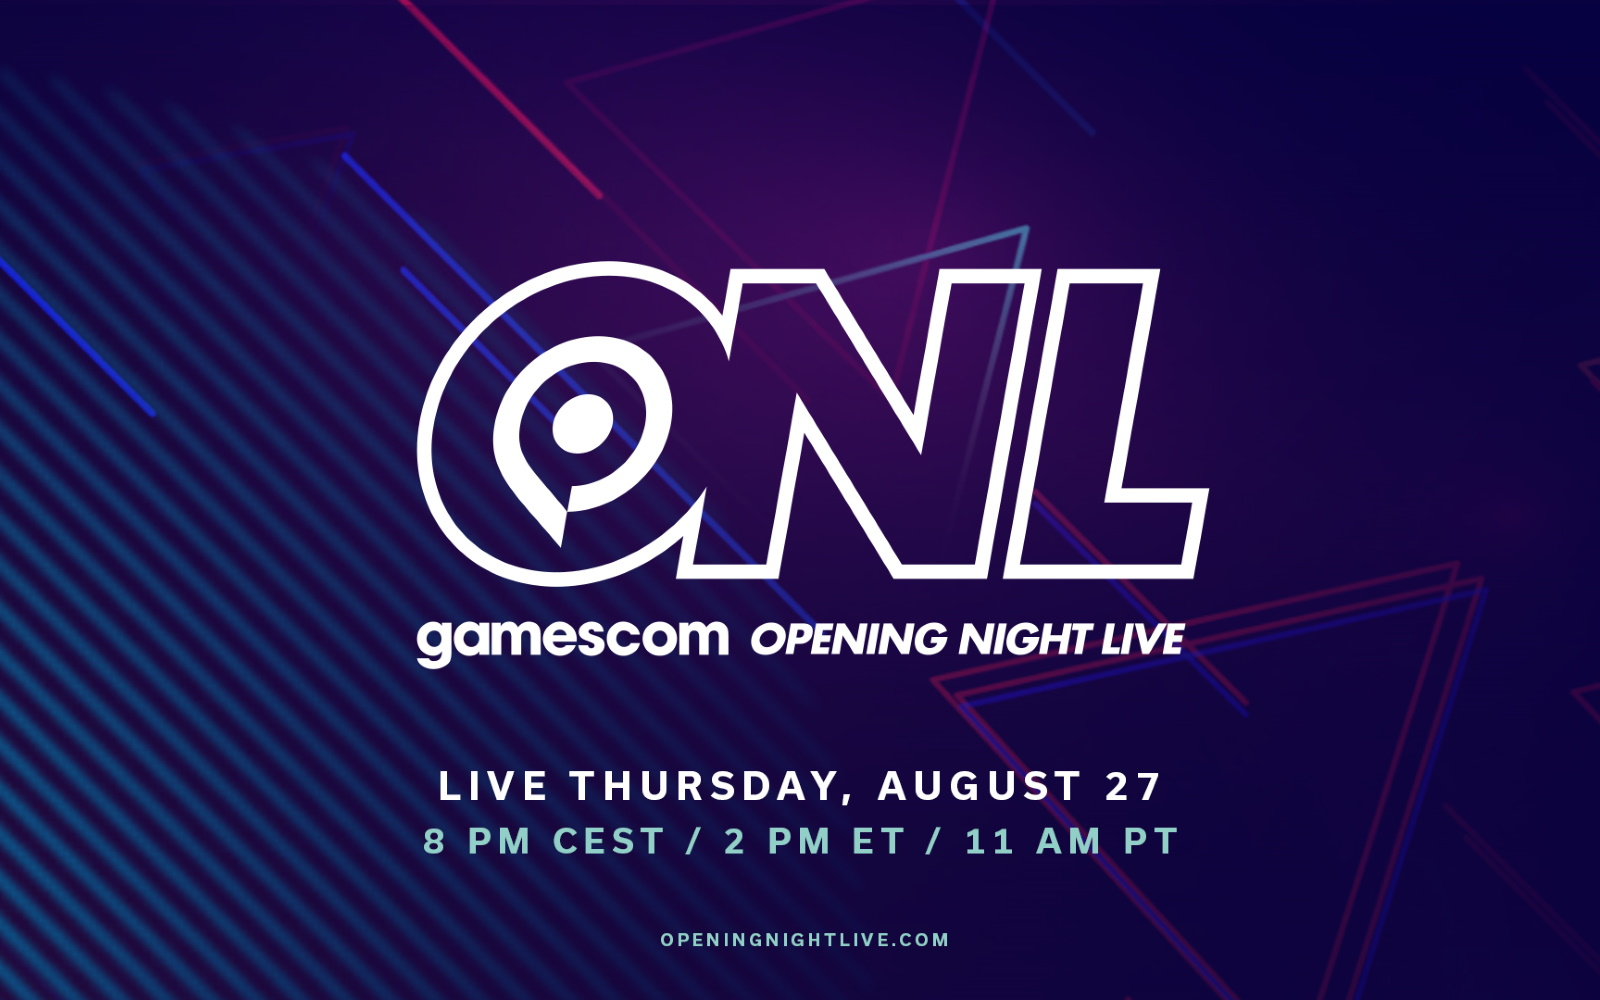 Gamescom: Opening Night Live Will Have Some Big World Premieres, Demos & Announcements